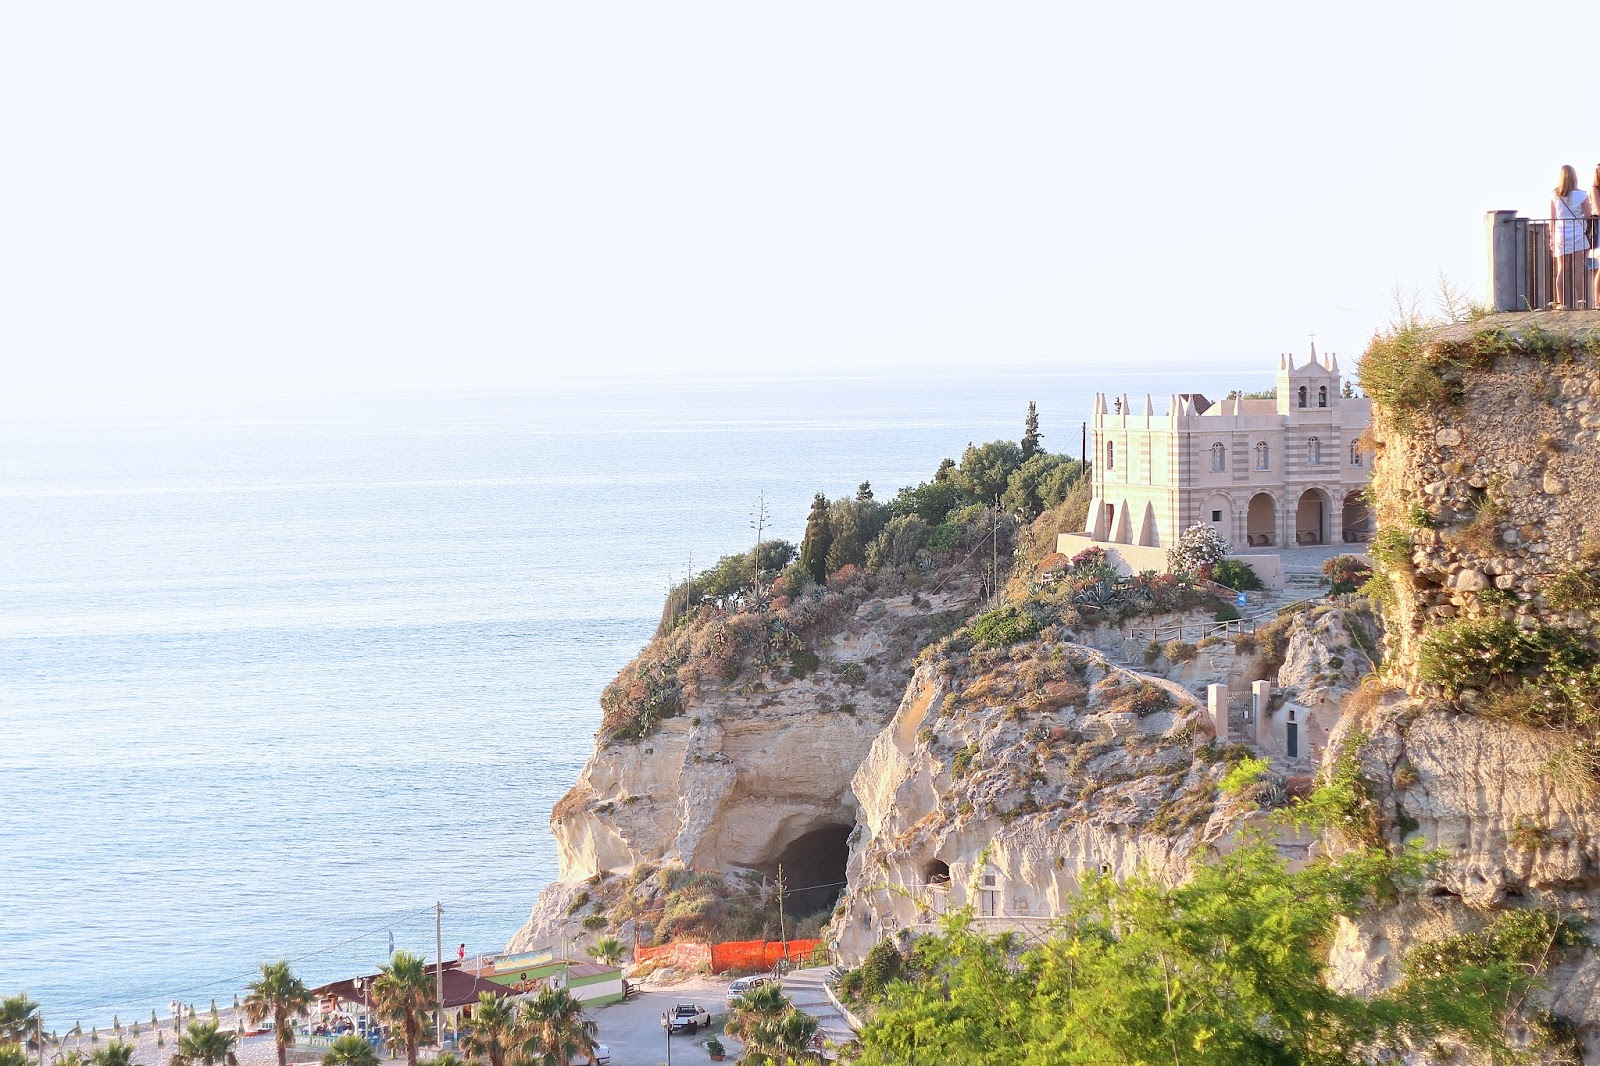 the view from the top of the town in tropea italy